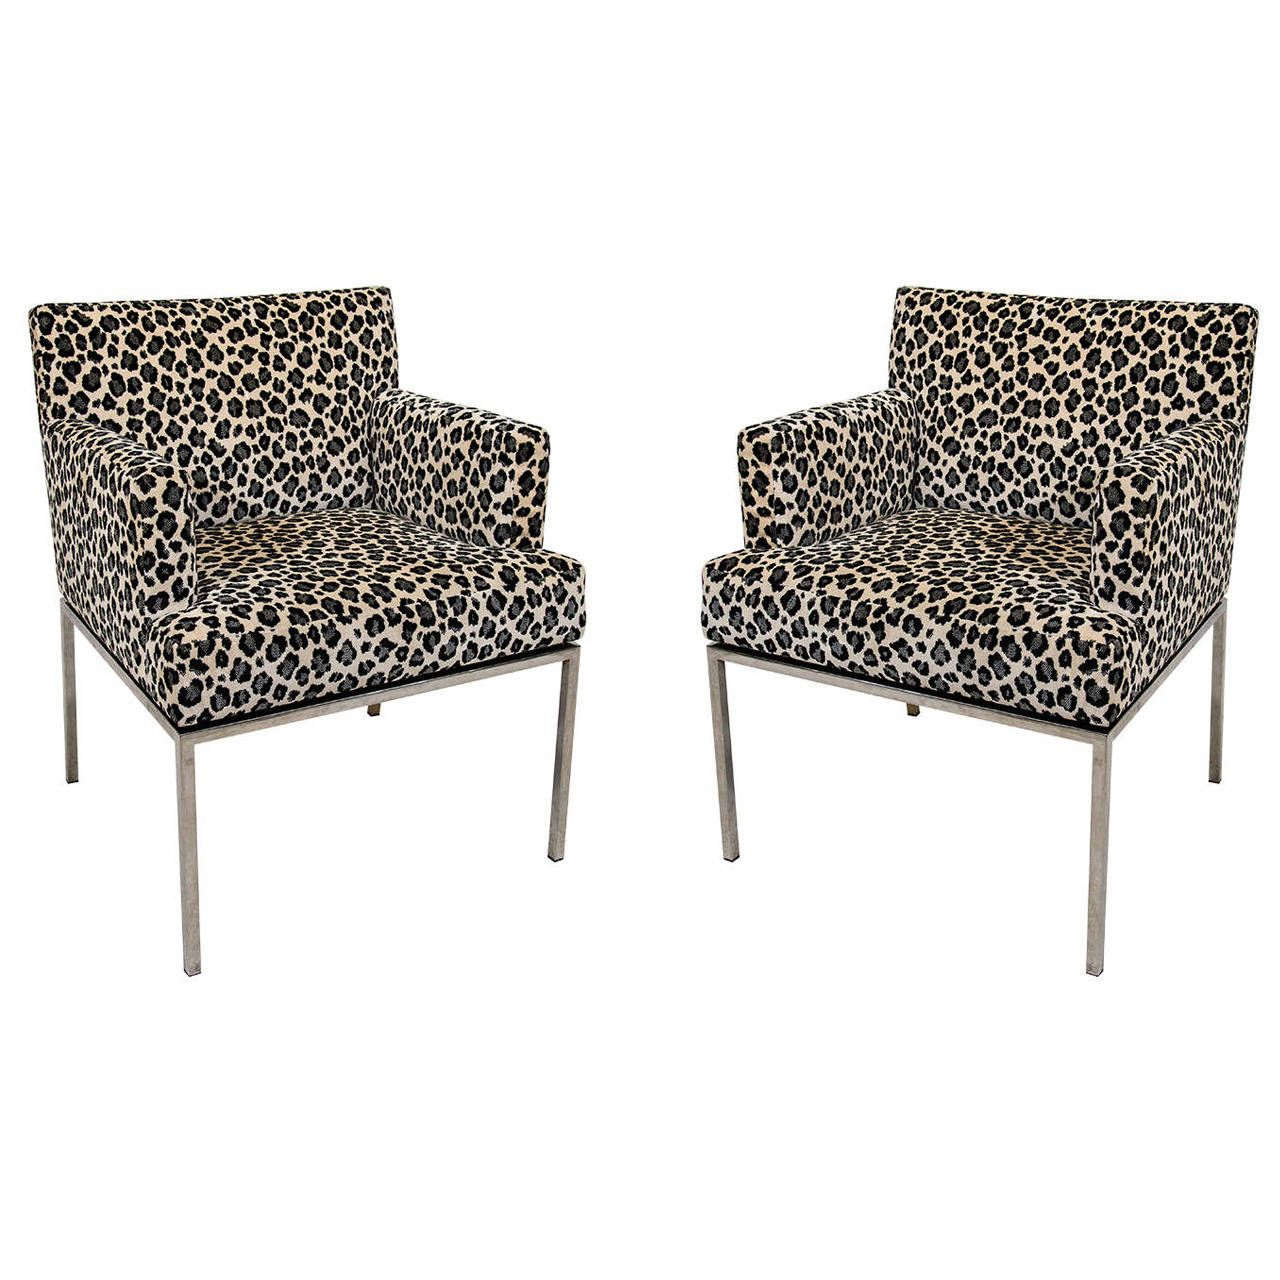 Pair Of Leopard Print Modernist Lounge Chairs From A Unique Collection Antique And Modern